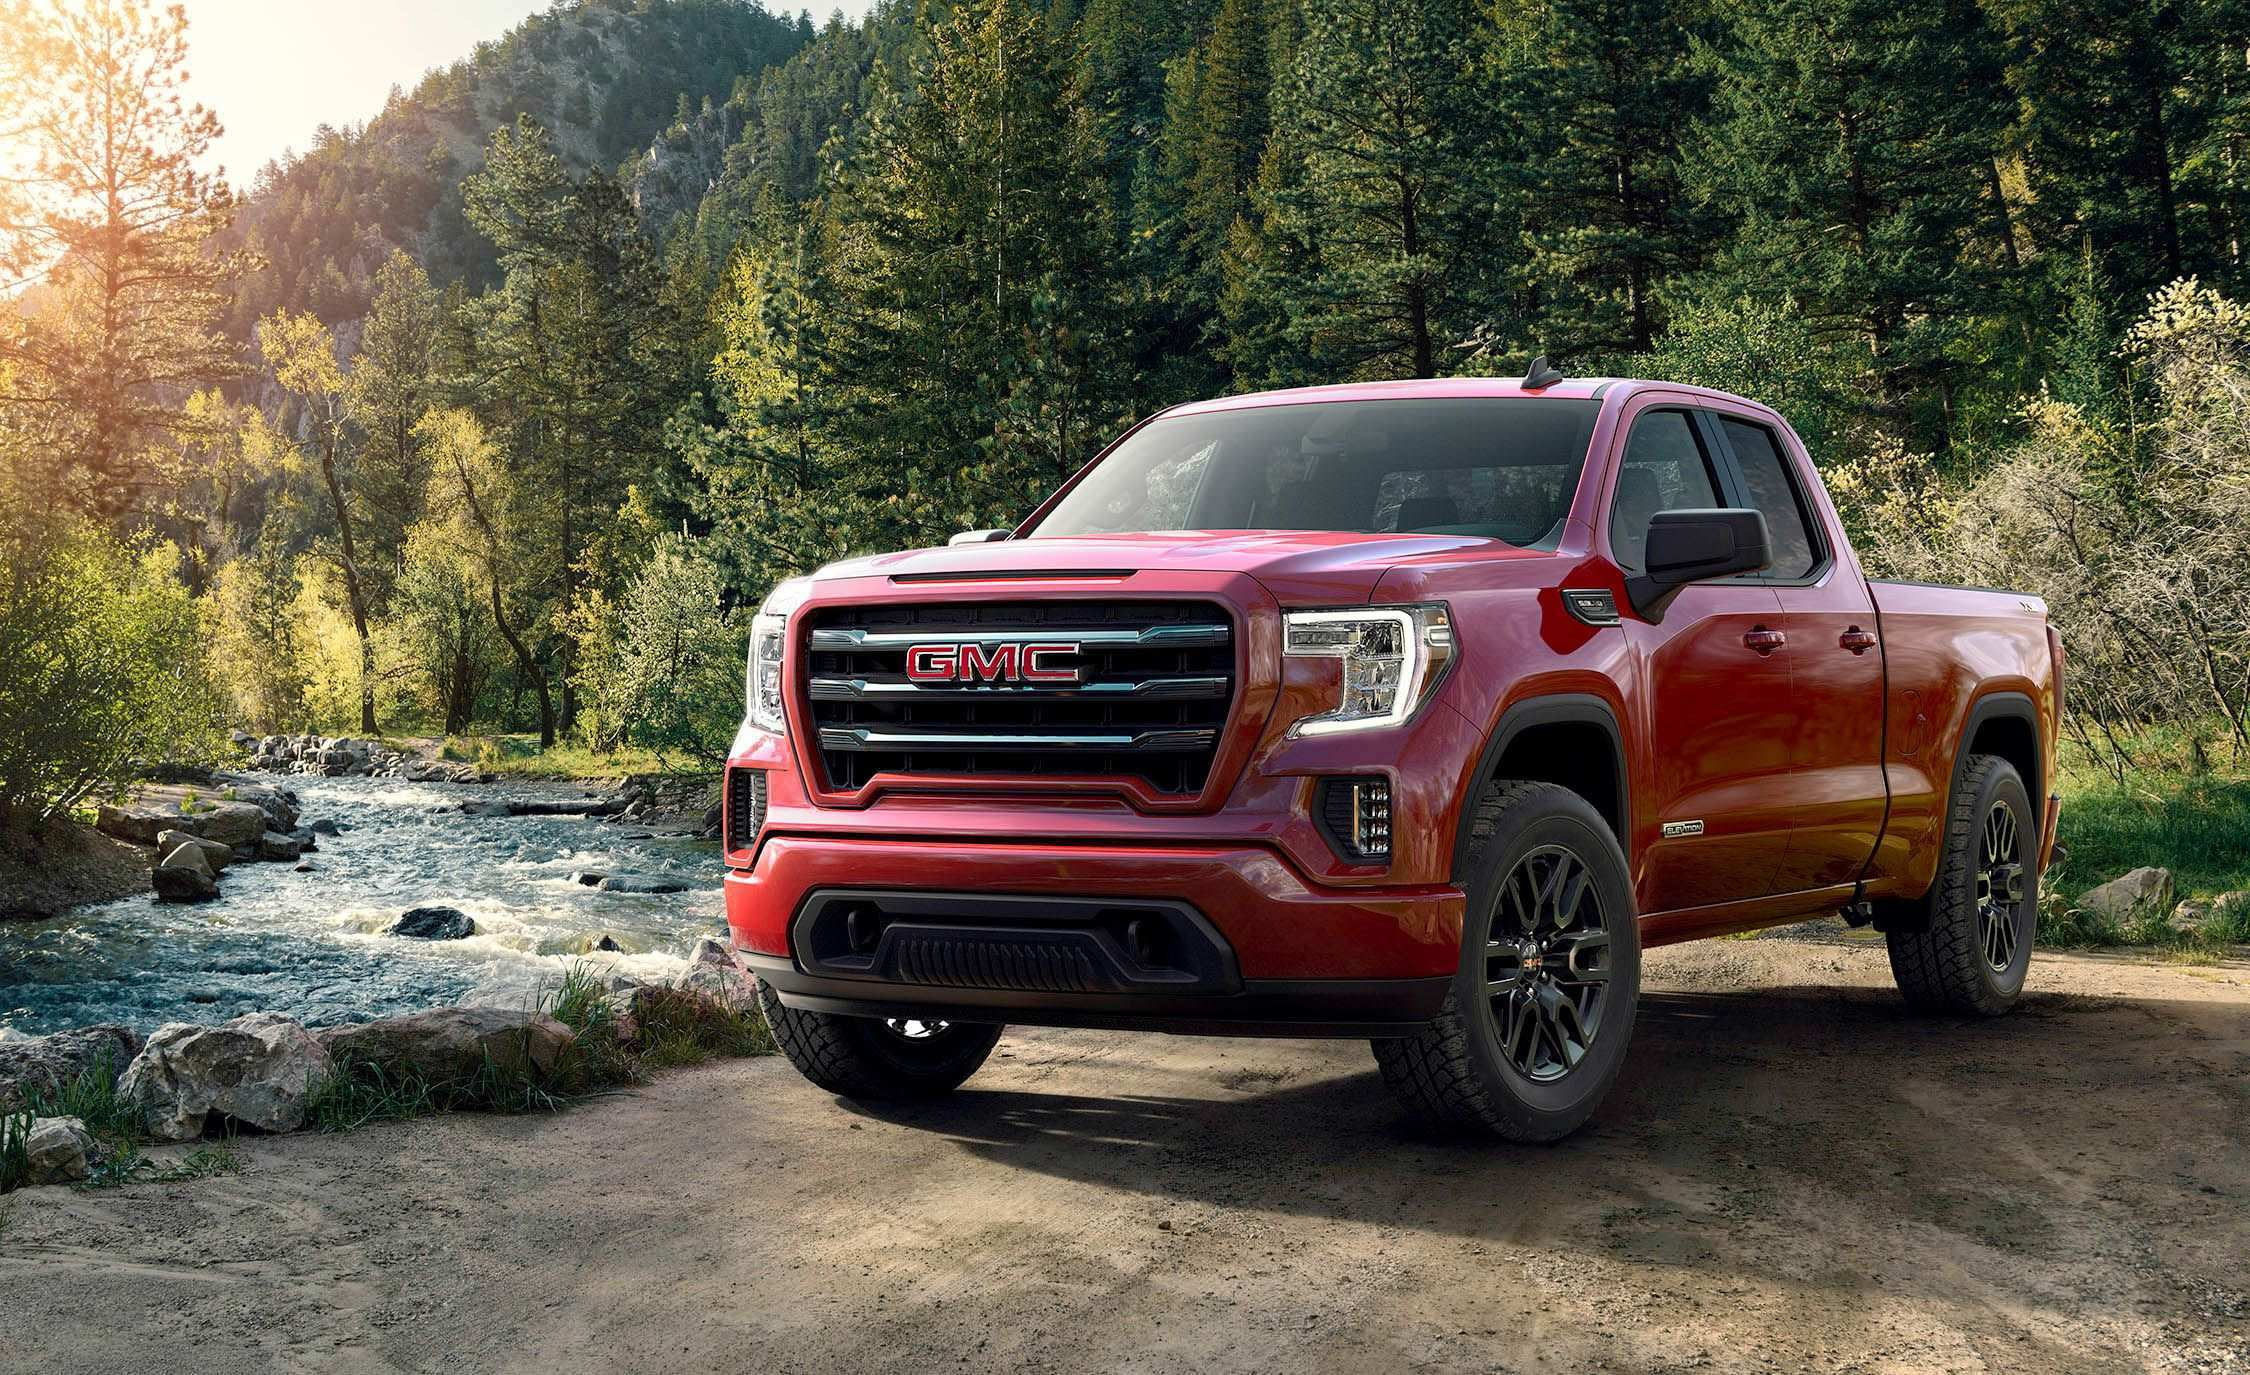 14 Concept of 2019 Gmc 3 0 Diesel Concept for 2019 Gmc 3 0 Diesel